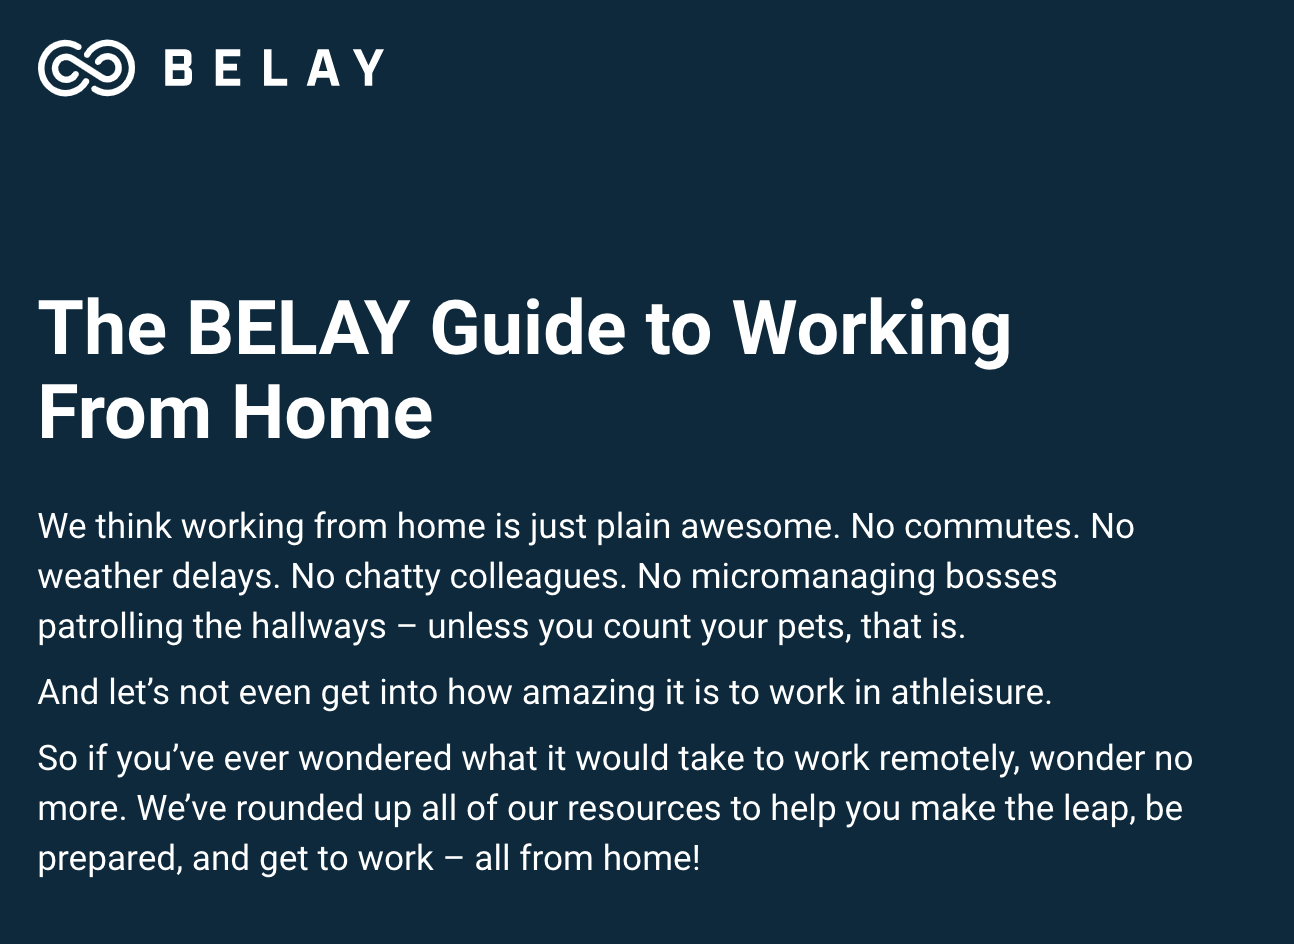 BELAY Guide to Working from Home